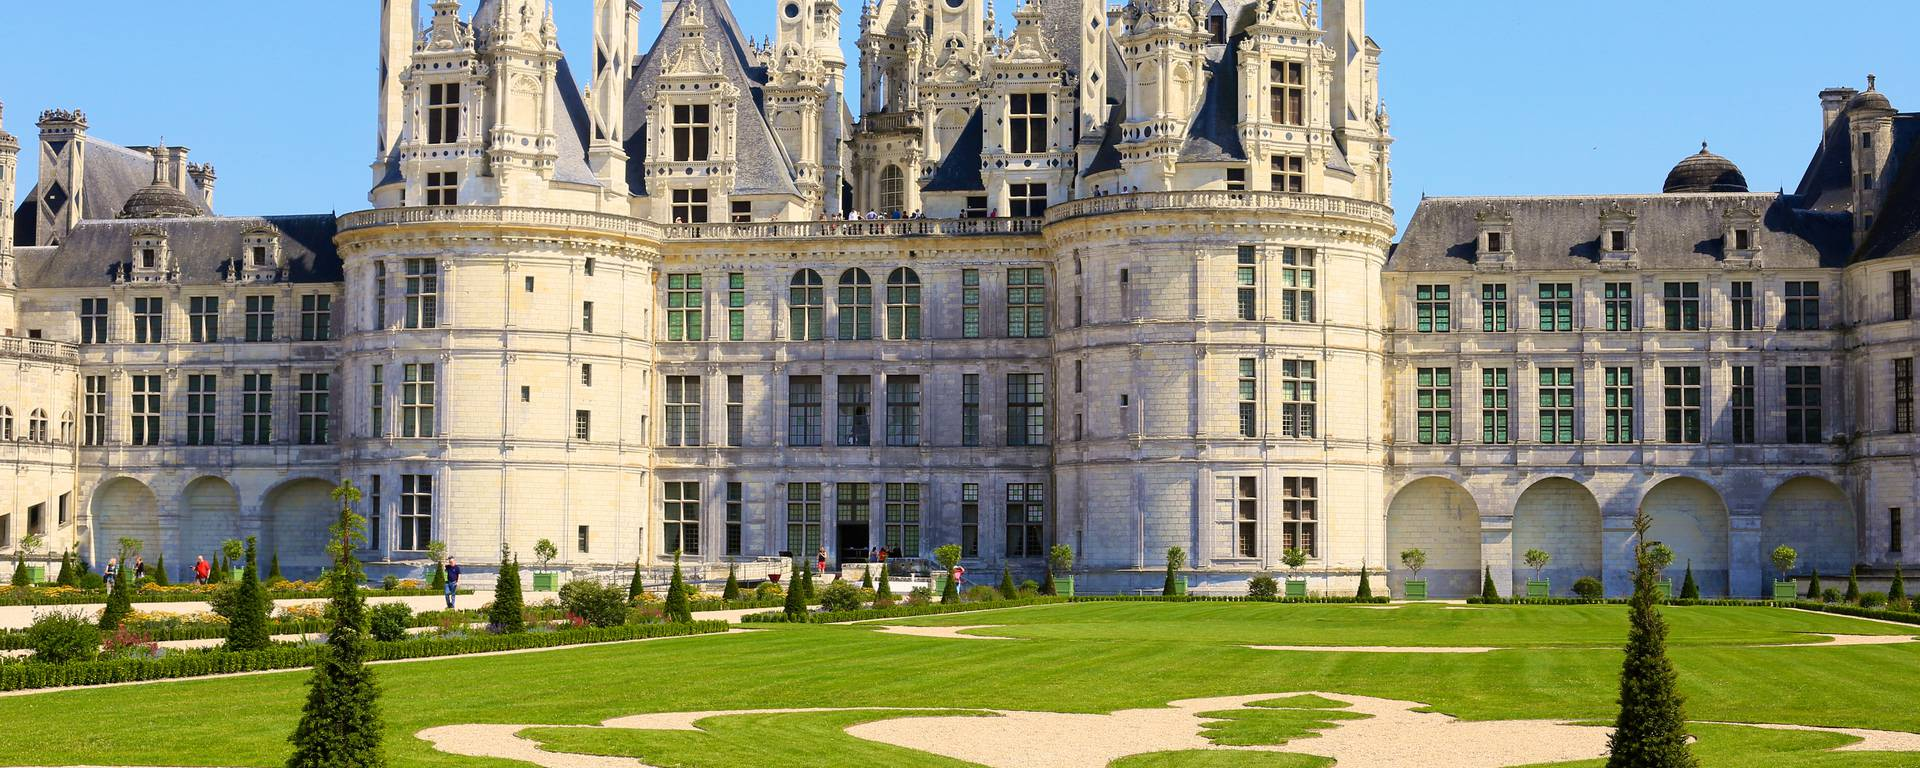 The château and gardens of Chambord. © Ludovic Letot